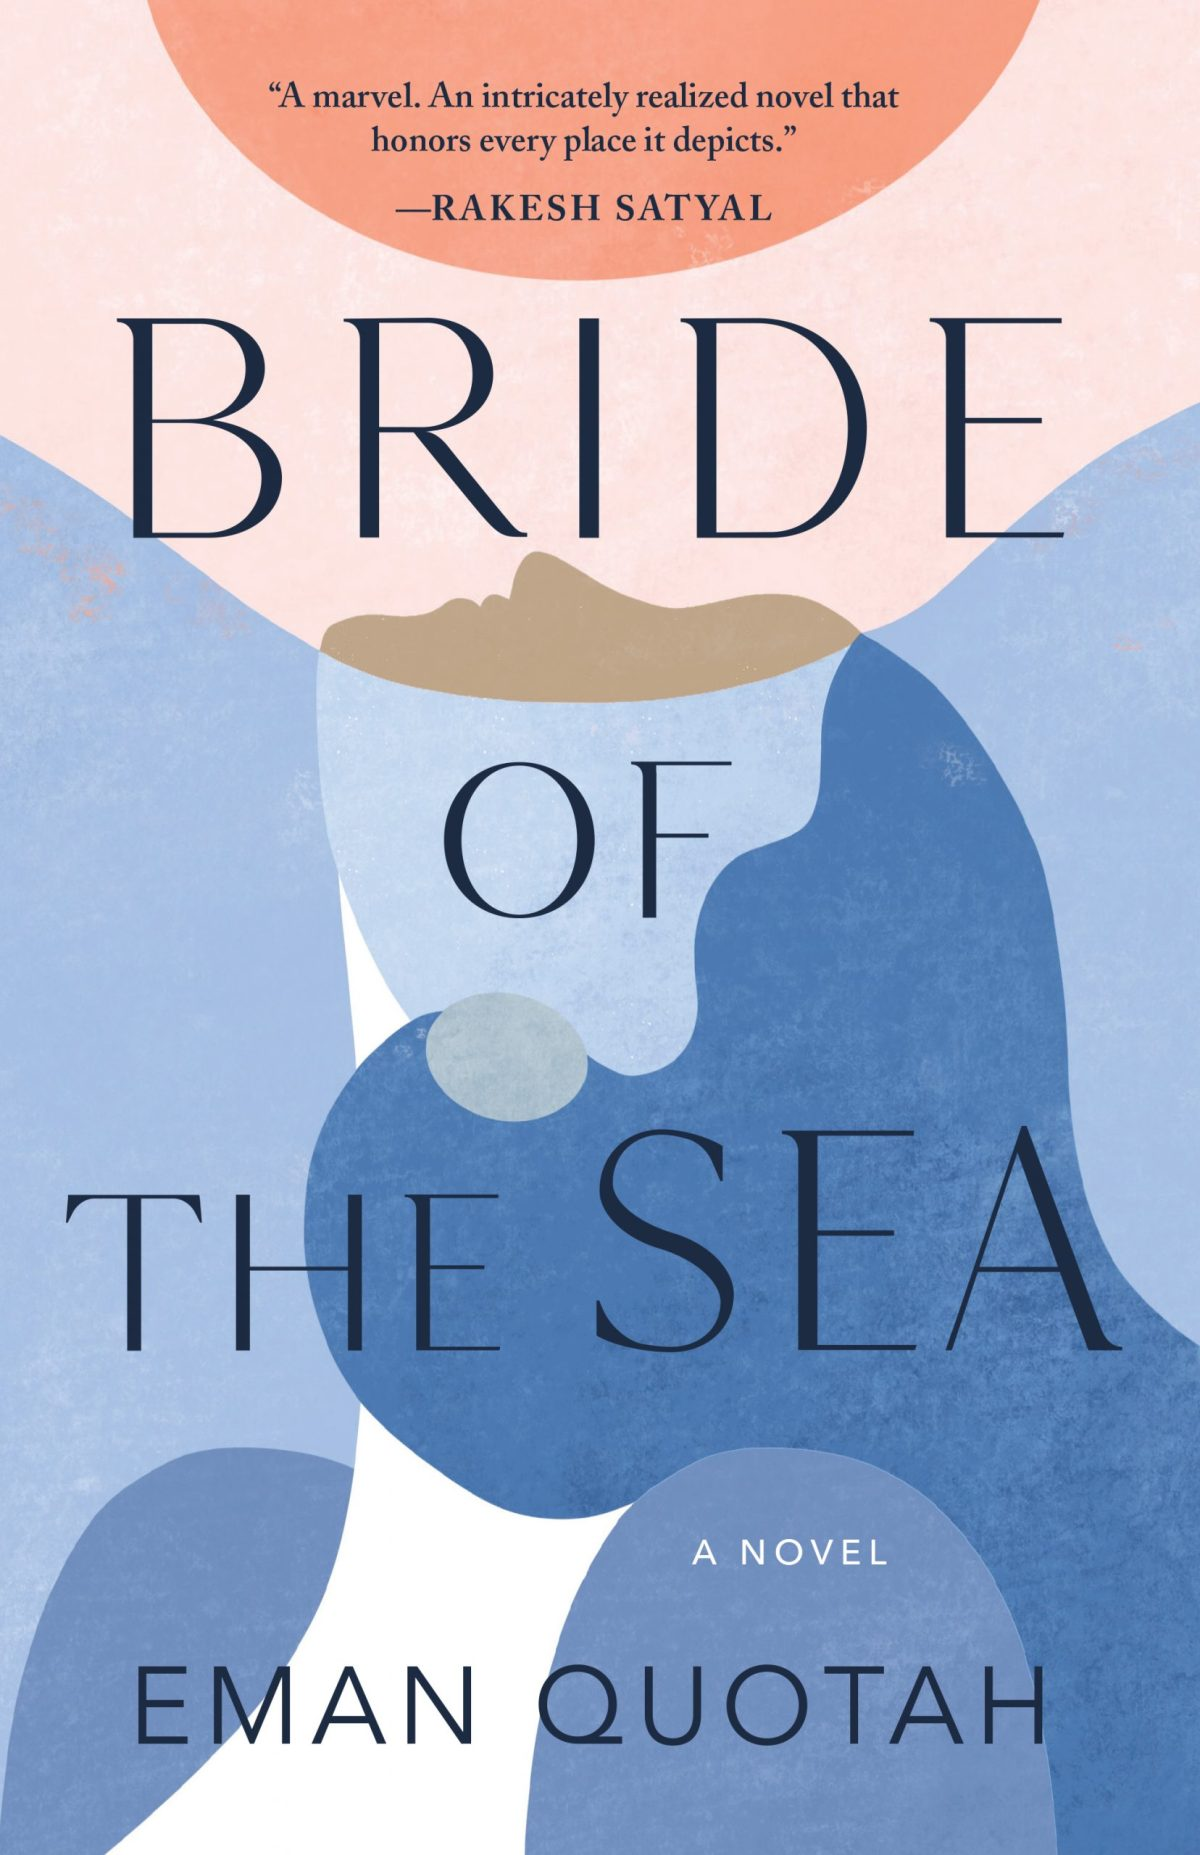 The cover of Bride of the Sea.